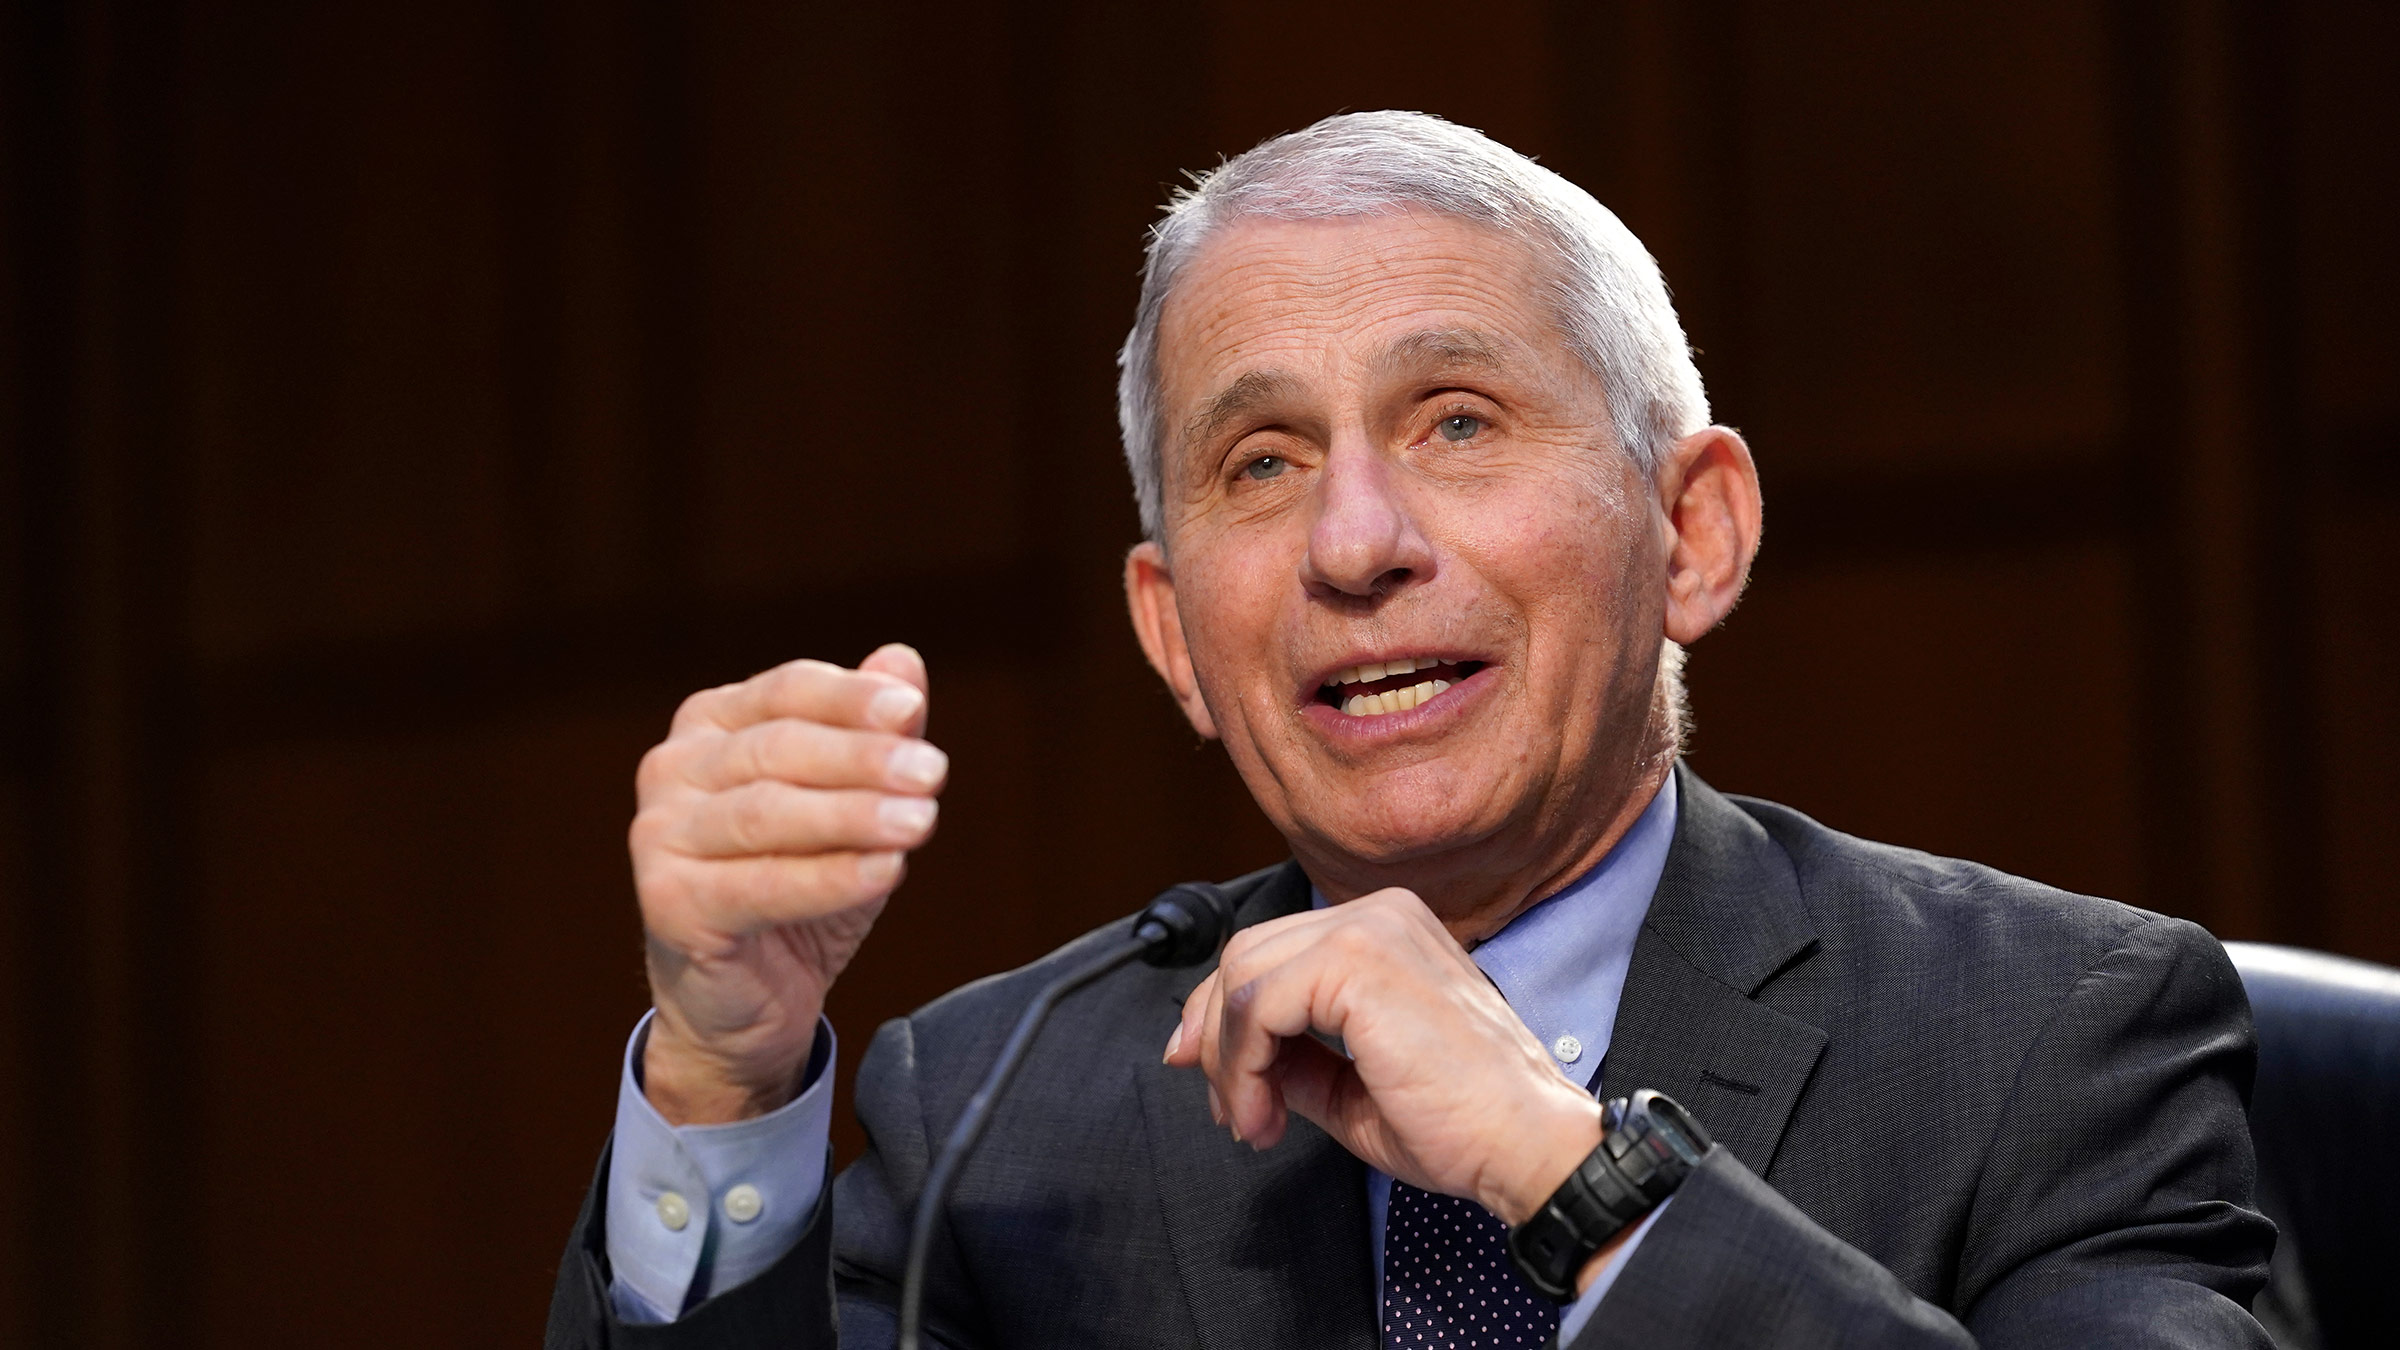 Dr. Anthony Fauci testifies during a Senate Health, Education, Labor and Pensions Committee hearing on March 18, in Washington, DC.